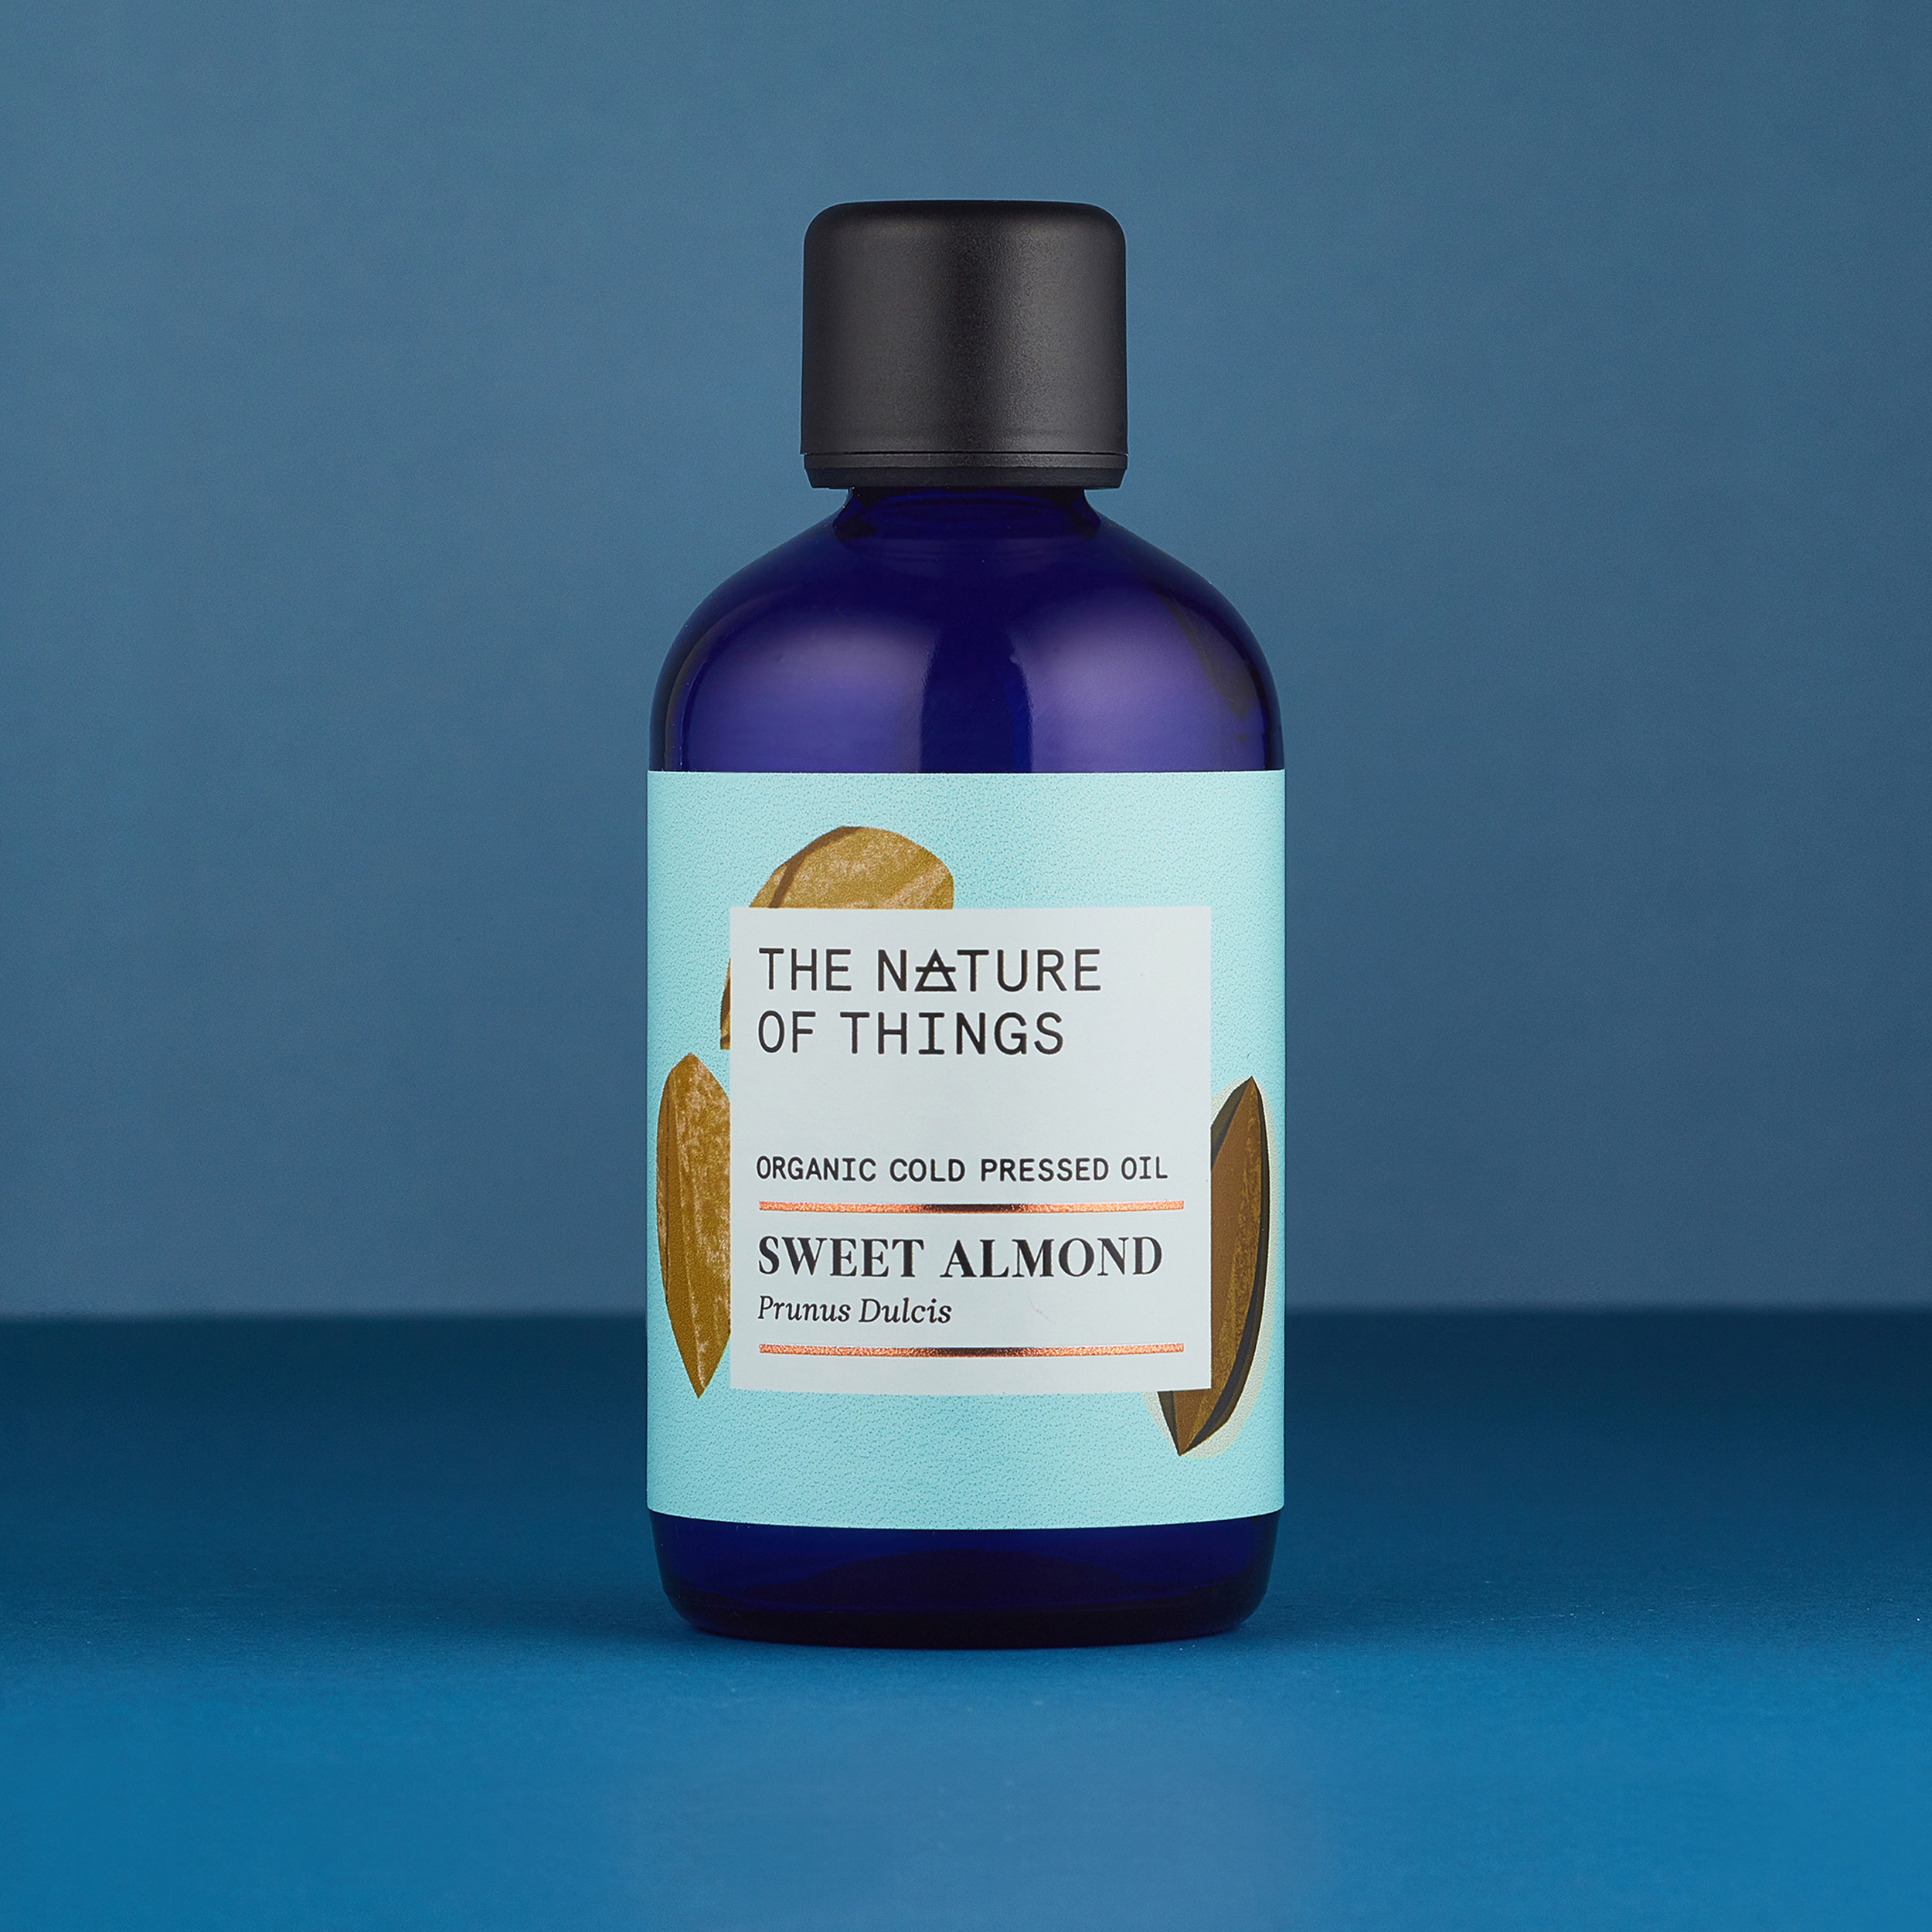 So Studio Designs a Range of Beauty Oils for The Nature of Things